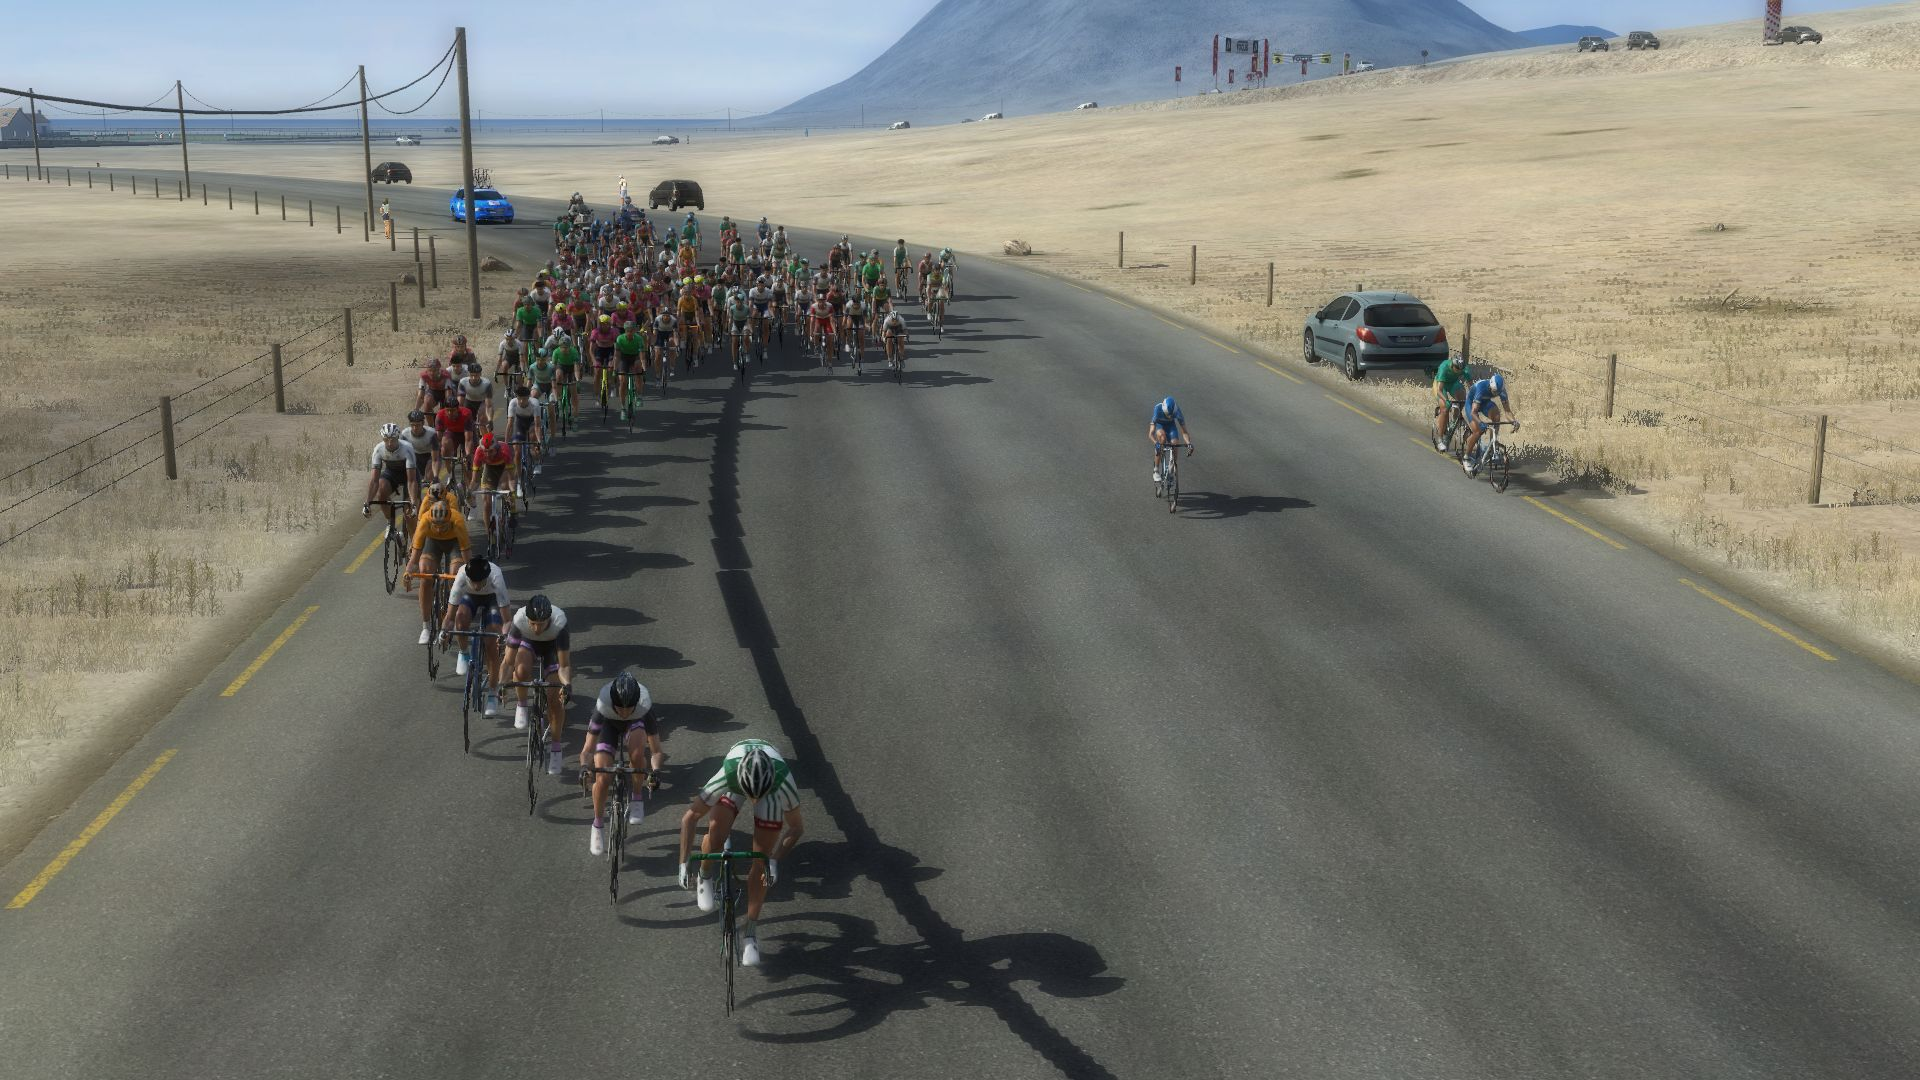 pcmdaily.com/images/mg/2019/Races/C2HC/Eritrea/TOES1%2013.jpg